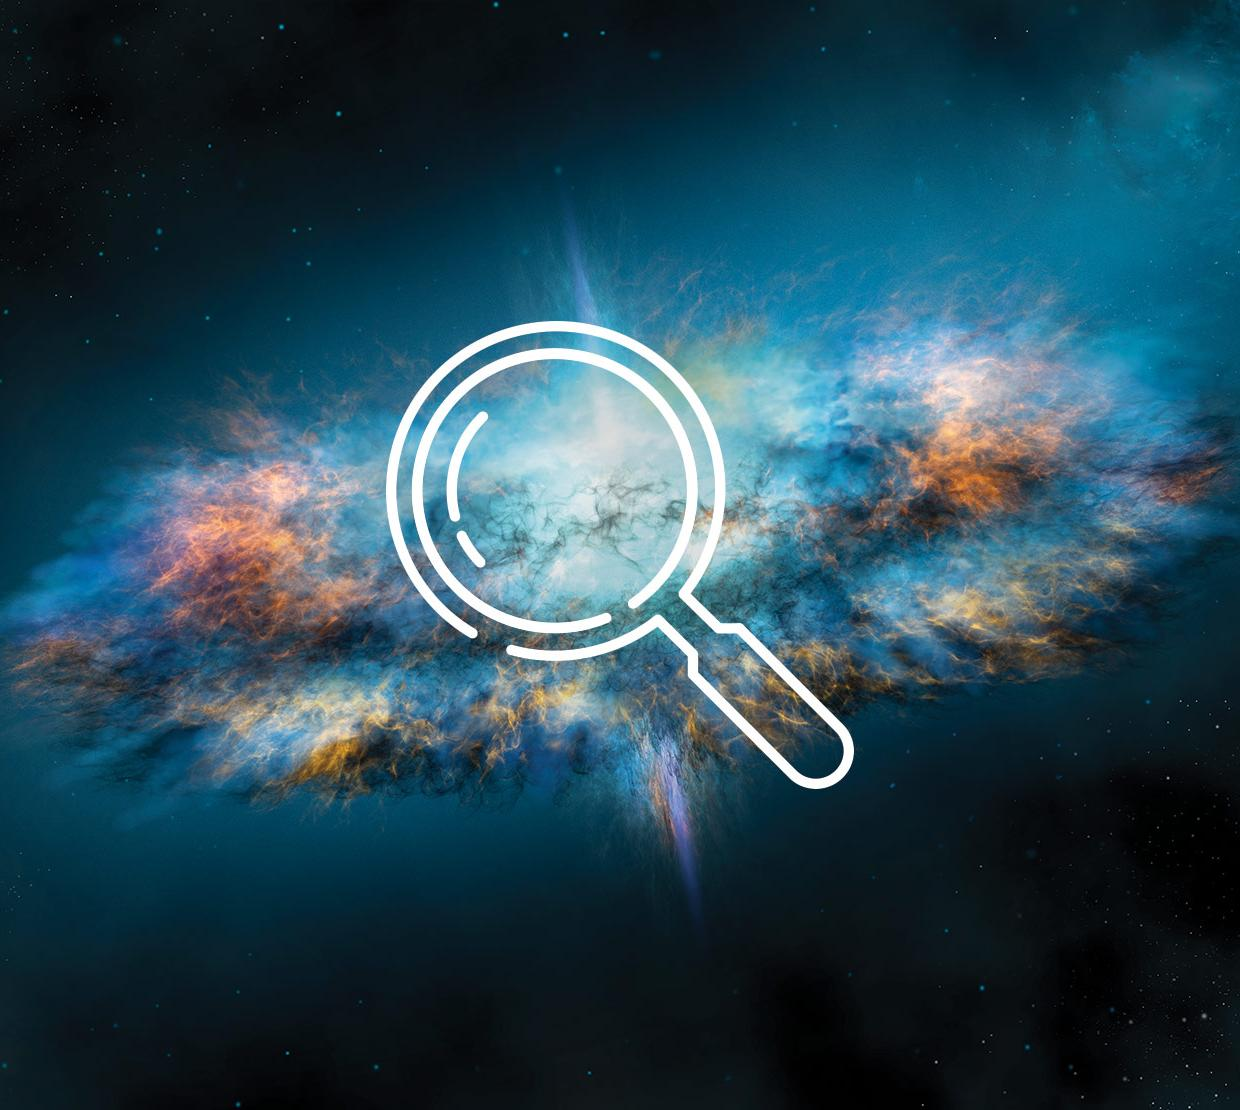 Magnifying glass icon above galaxy